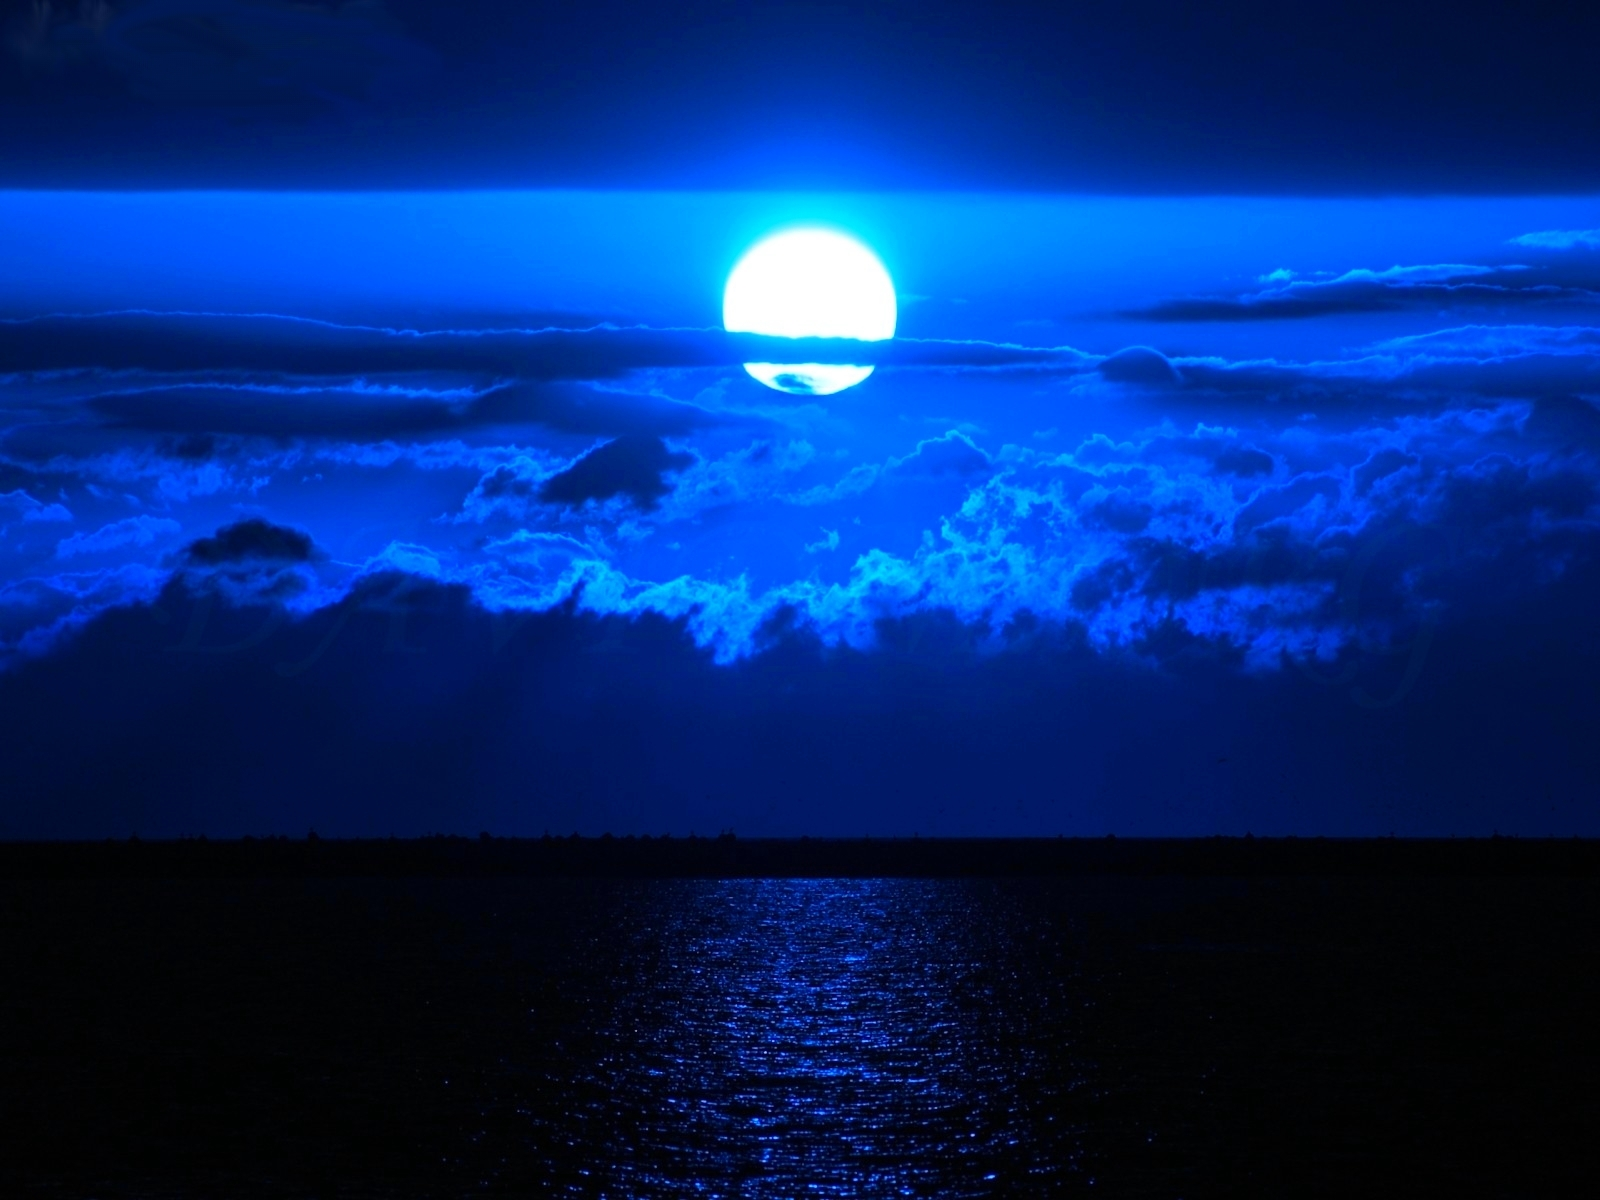 Blue Moon Wallpapers & Pictures